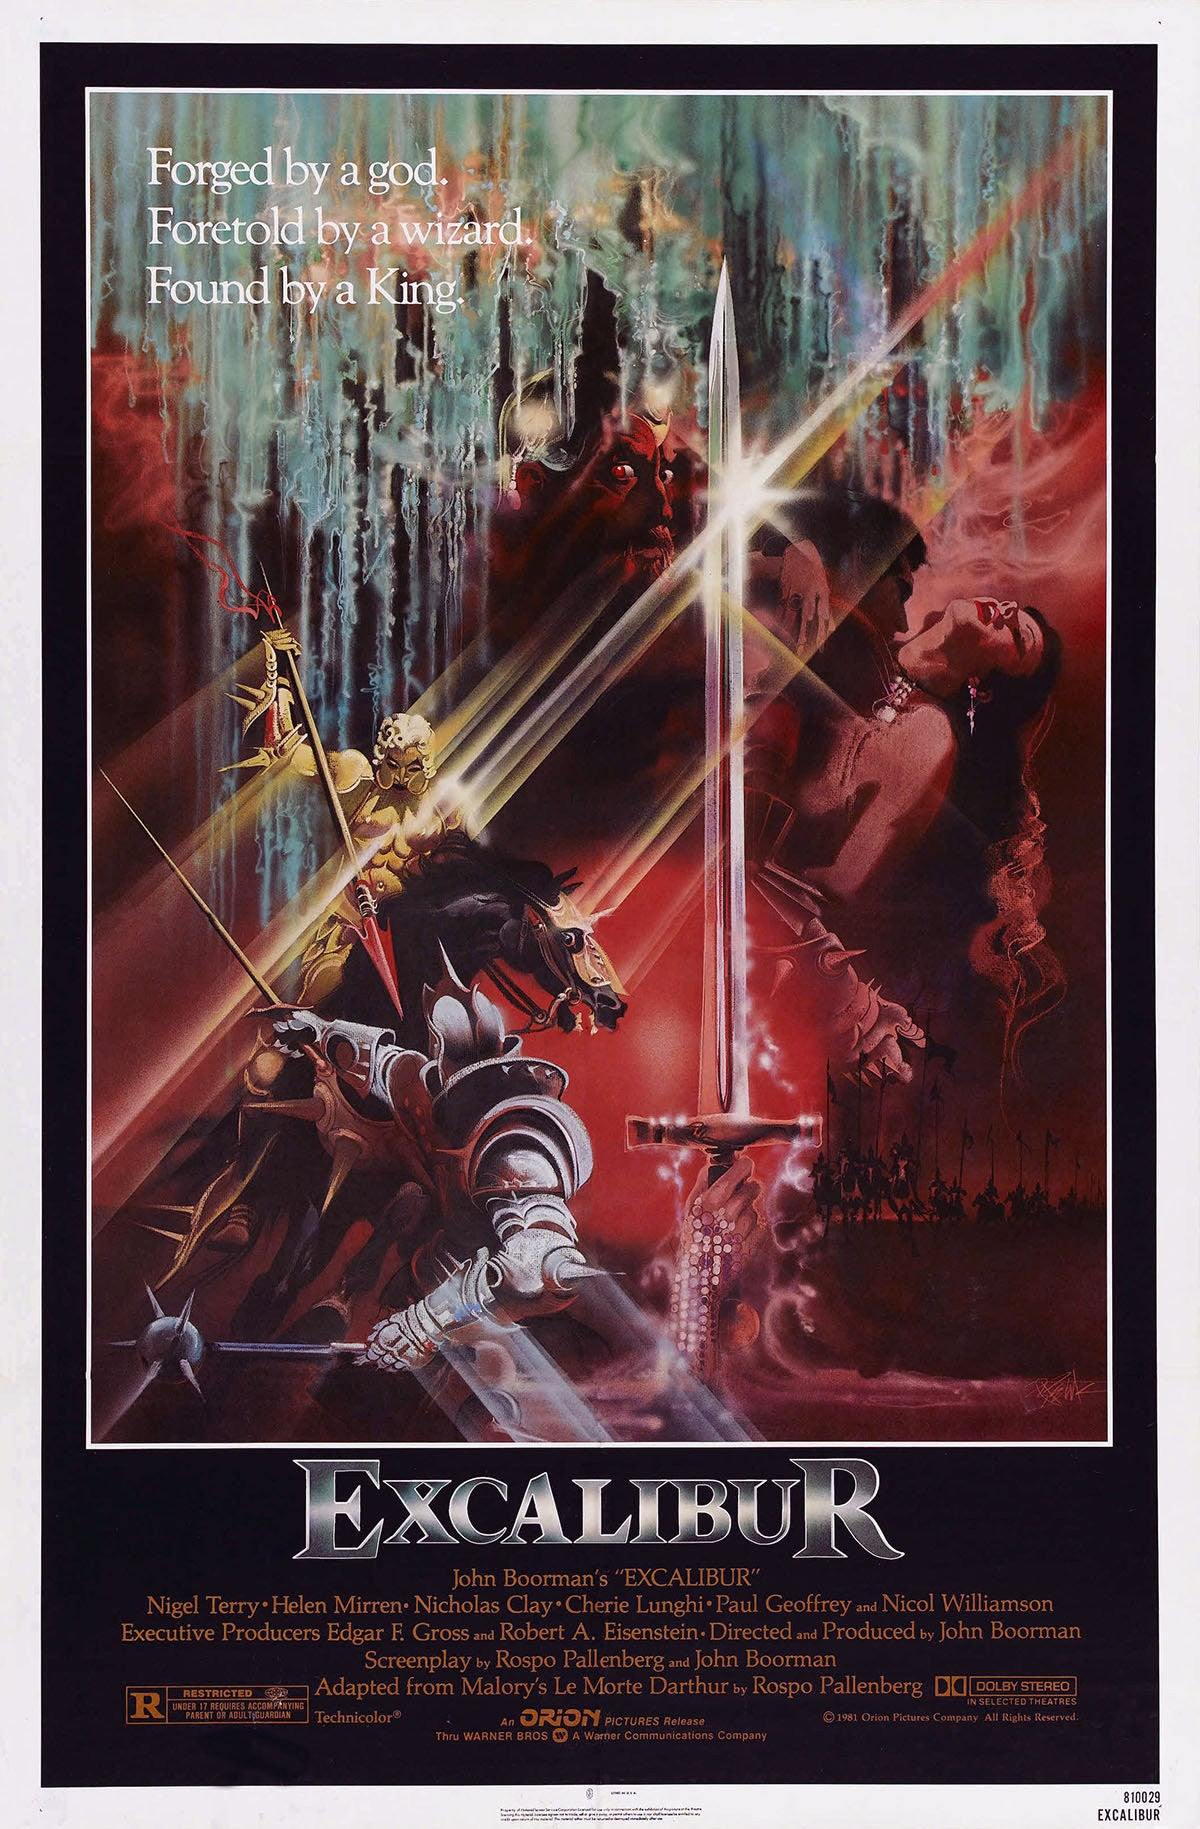 an analysis of excalibur a movie by john boorman John boorman, producer: excalibur john boorman attended catholic school (salesian order) although his family was not, in fact, roman catholic his first job was for a dry-cleaner later, he worked as a critic for a women's journal and for a radio station until he entered the television business .